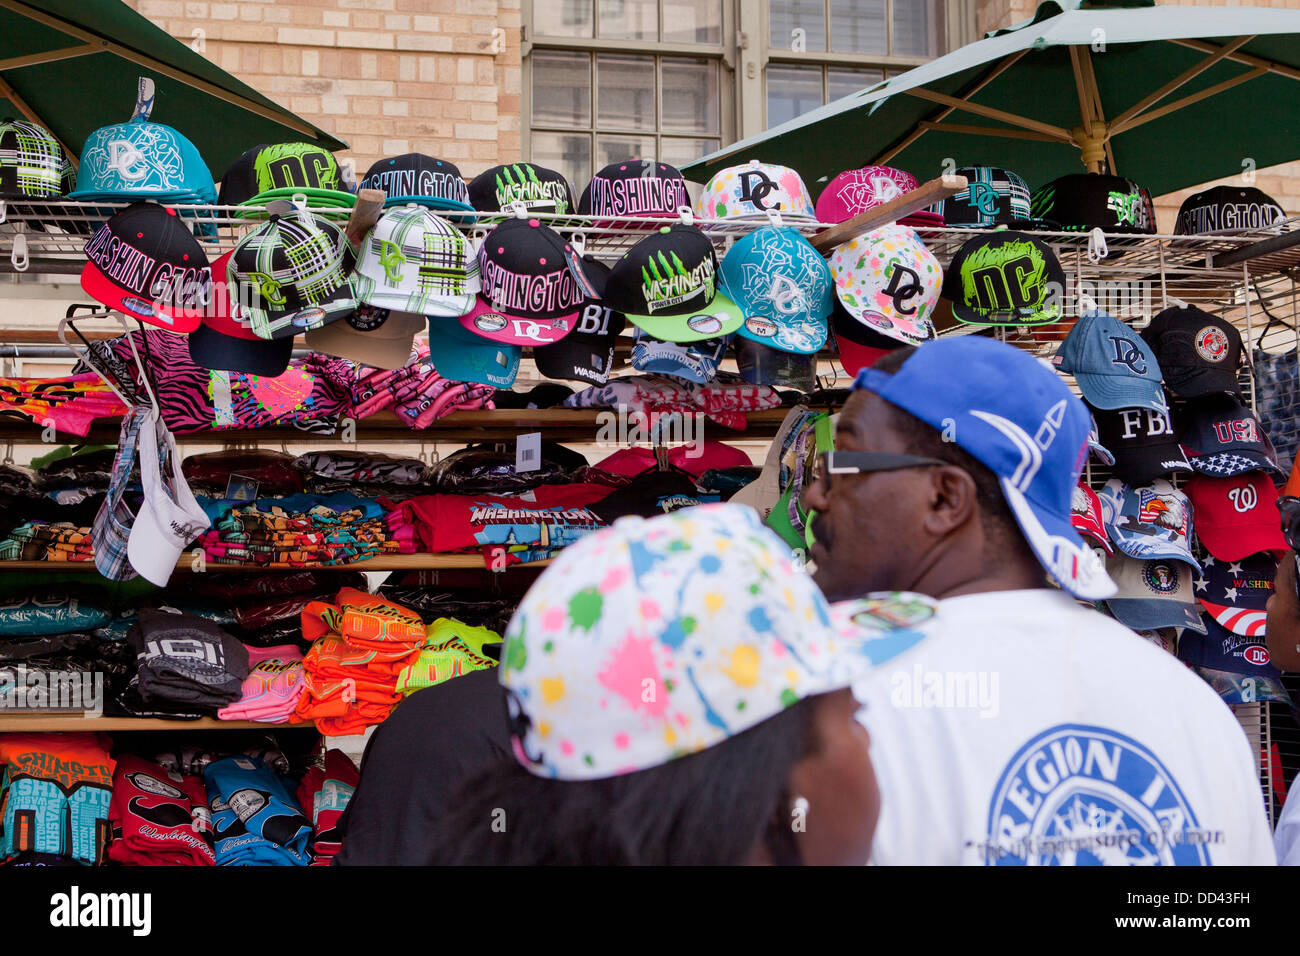 Souvenir hats and T-shirt sales cart in Washington, DC - Stock Image